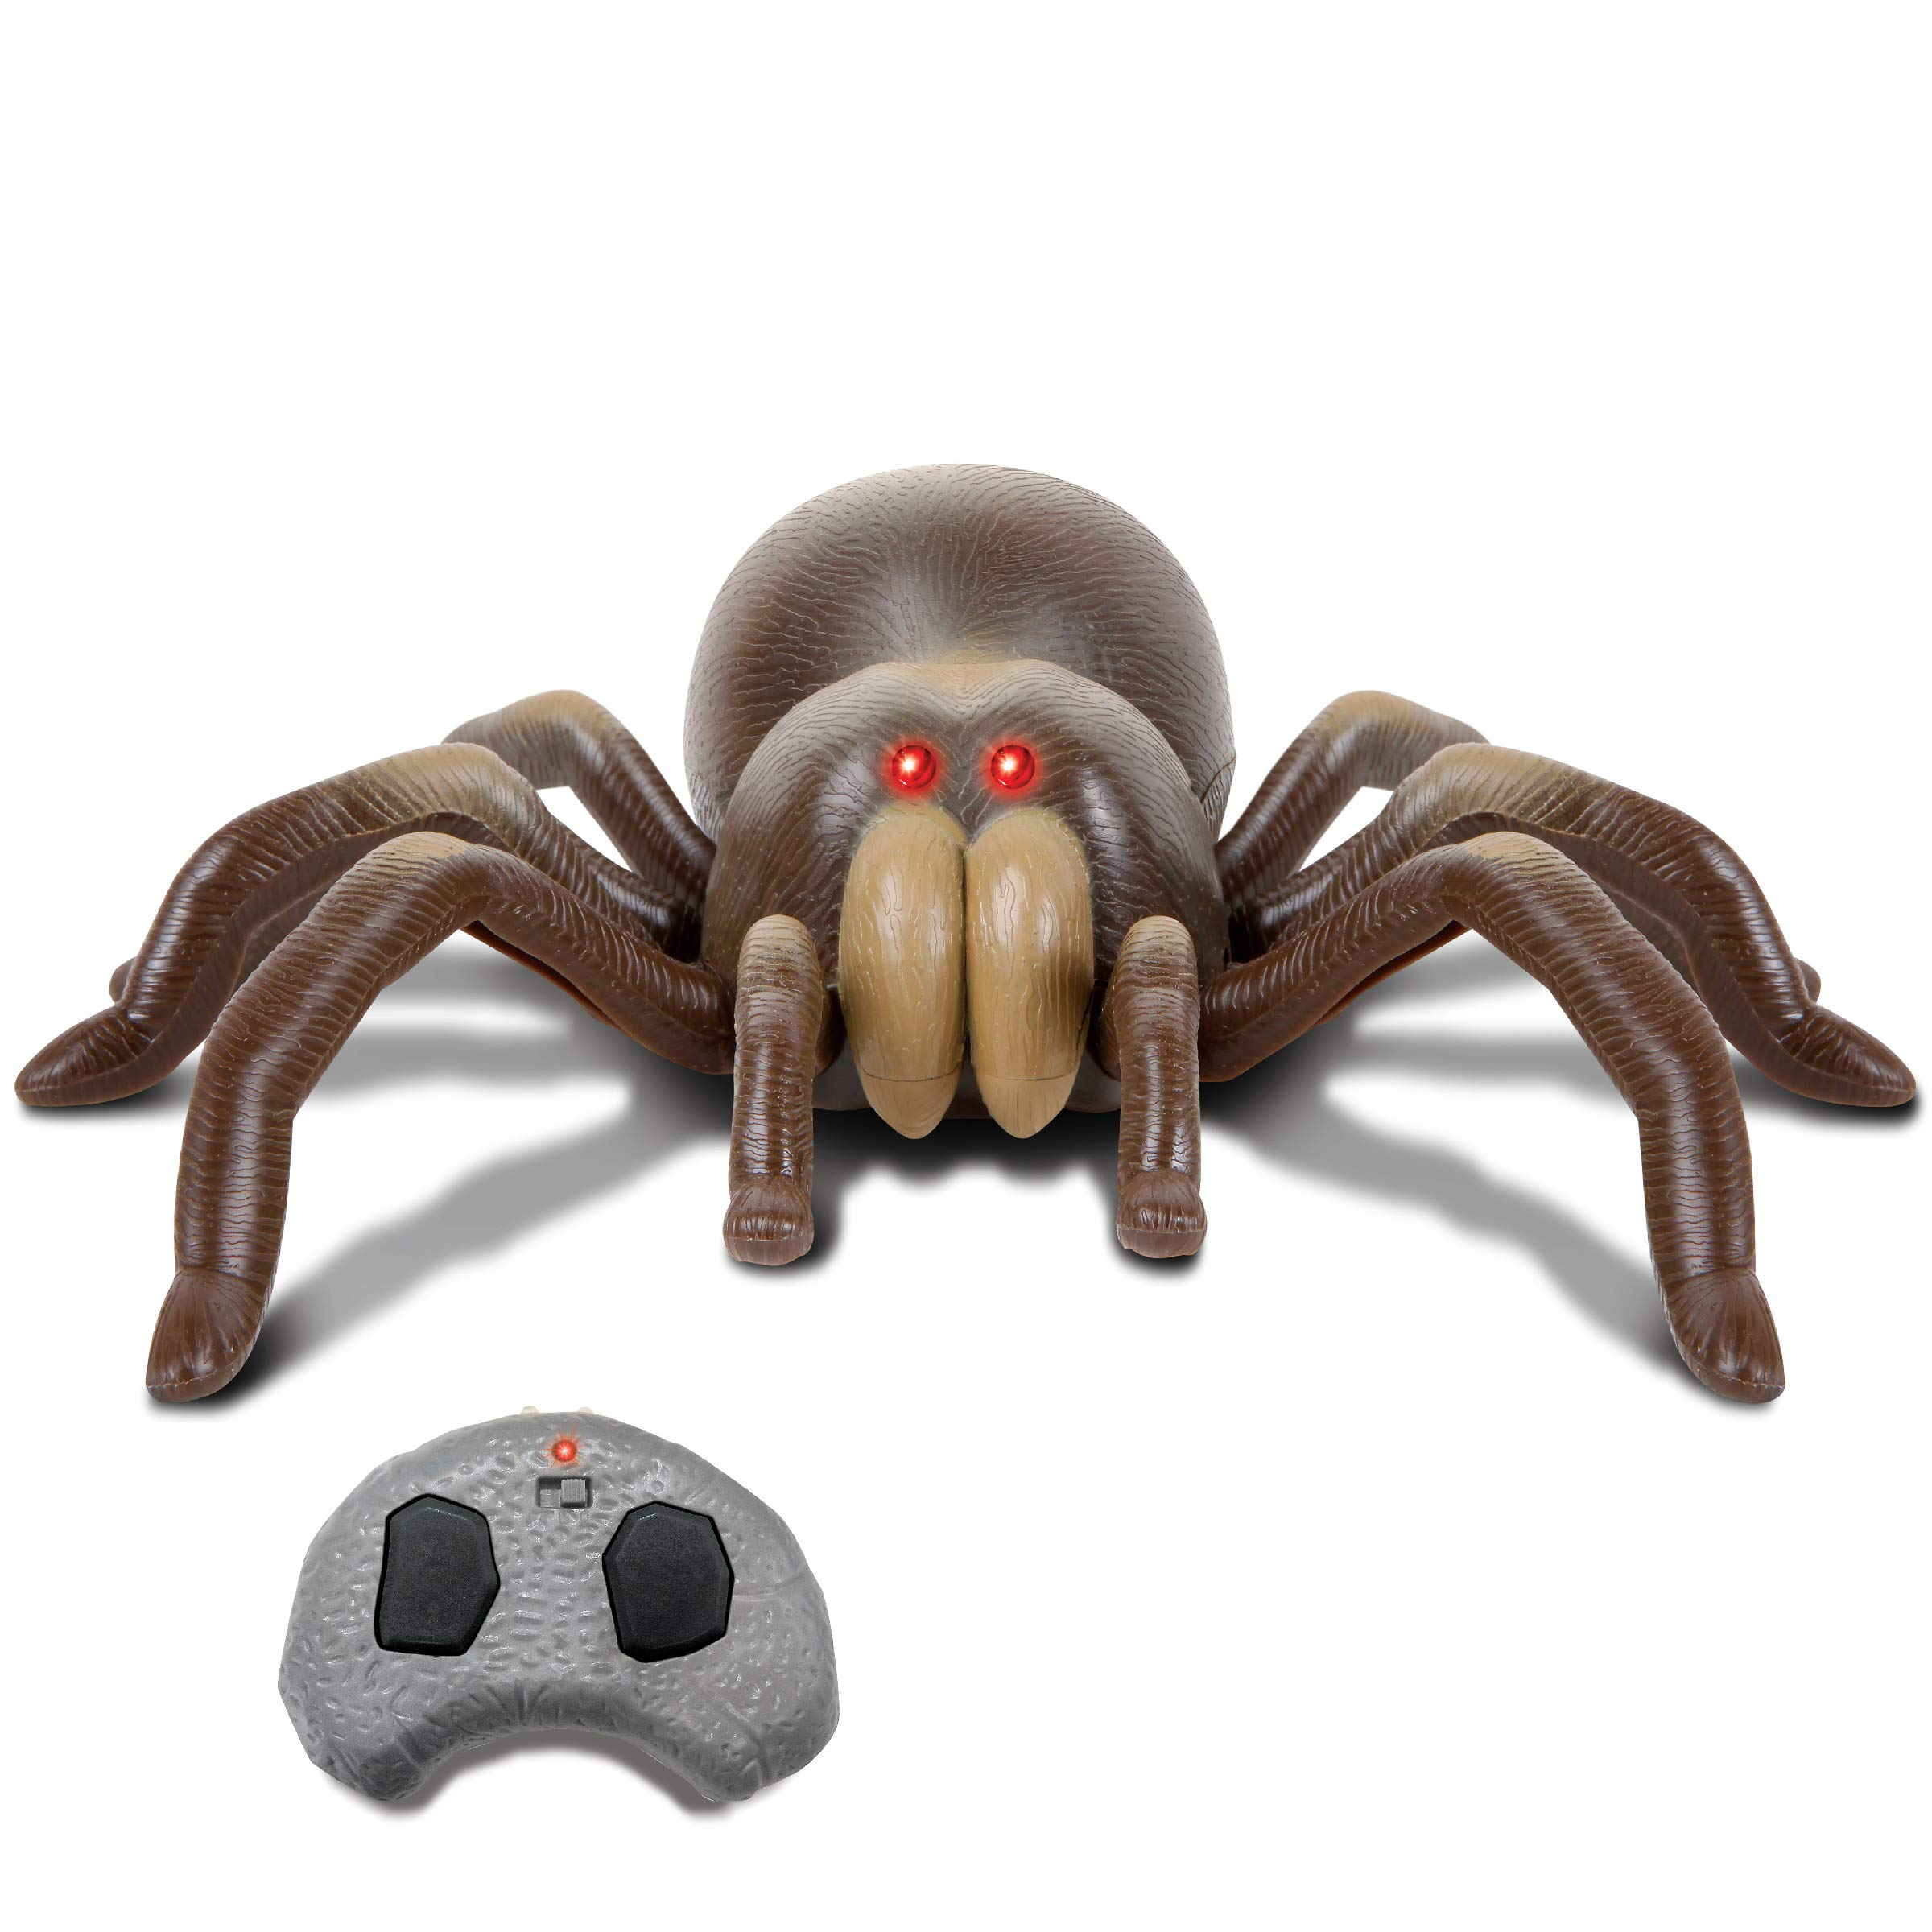 DISCOVERY KIDS RC Moving Tarantula Spider, Wireless Remote Control Toy for Kids, Great for Pranks and Halloween Decorations, Realistic Scurrying Movement, Glowing Scary Red LED Eyes by Discovery Kids (Image #4)